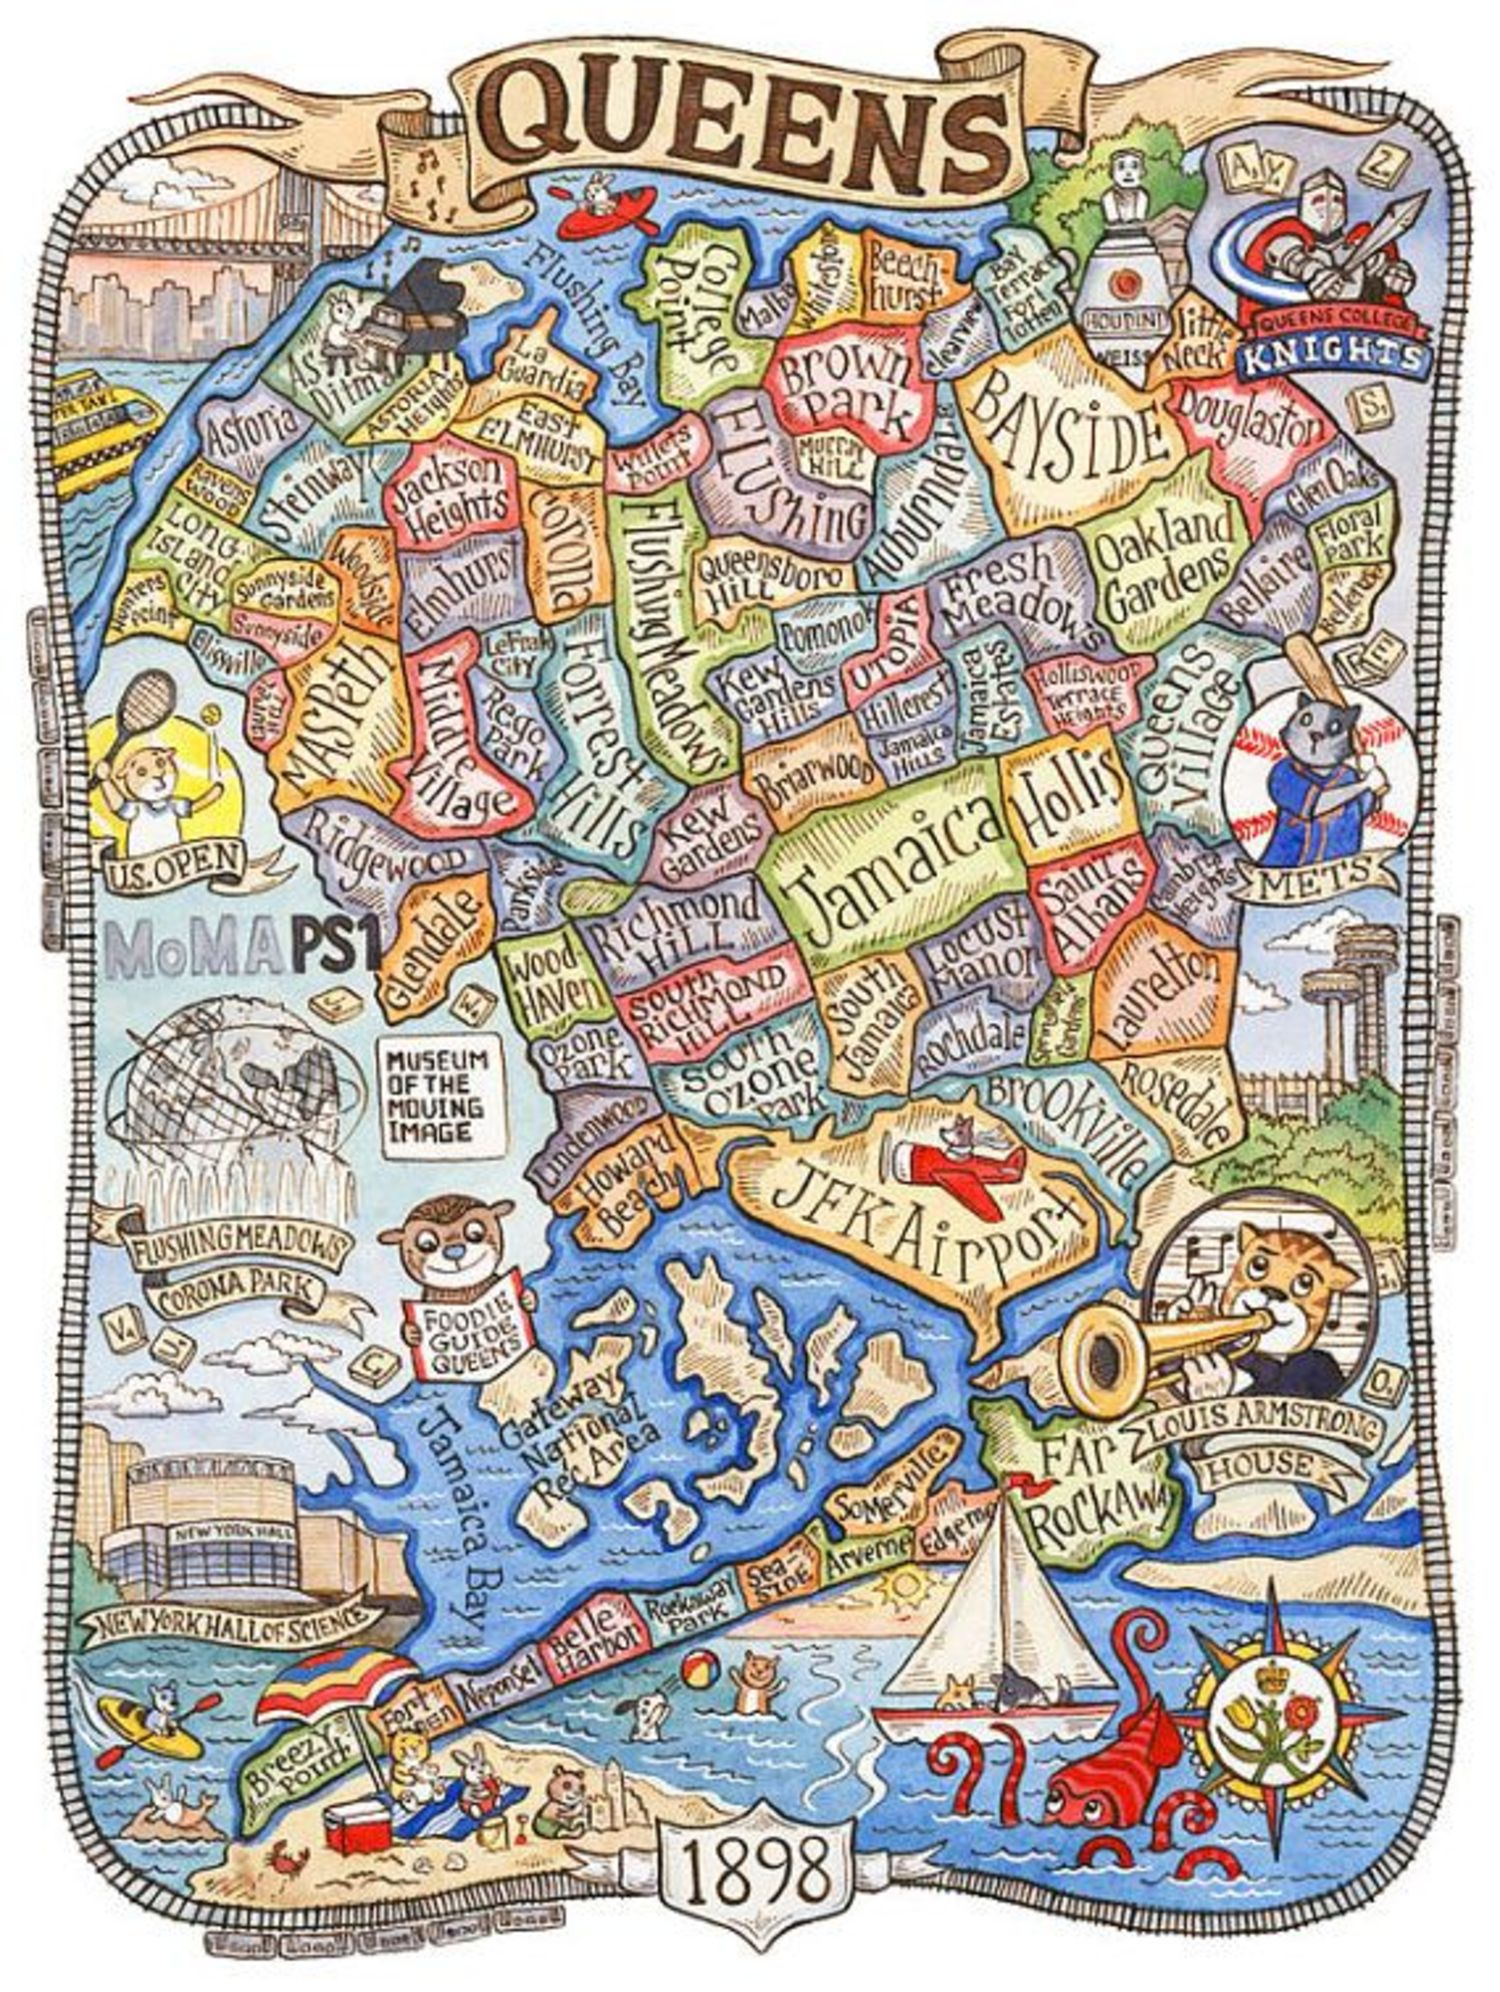 This Cartoonish Map of Queens Actually Represents Local ... on map of brooklyn and queens neighborhoods, tribeca neighborhood of new york city, map resort ski area new york, map of queens fresh meadows new york, map of bronx neighborhoods new york, map of quuns, map of queens neighborhoods maspeth,